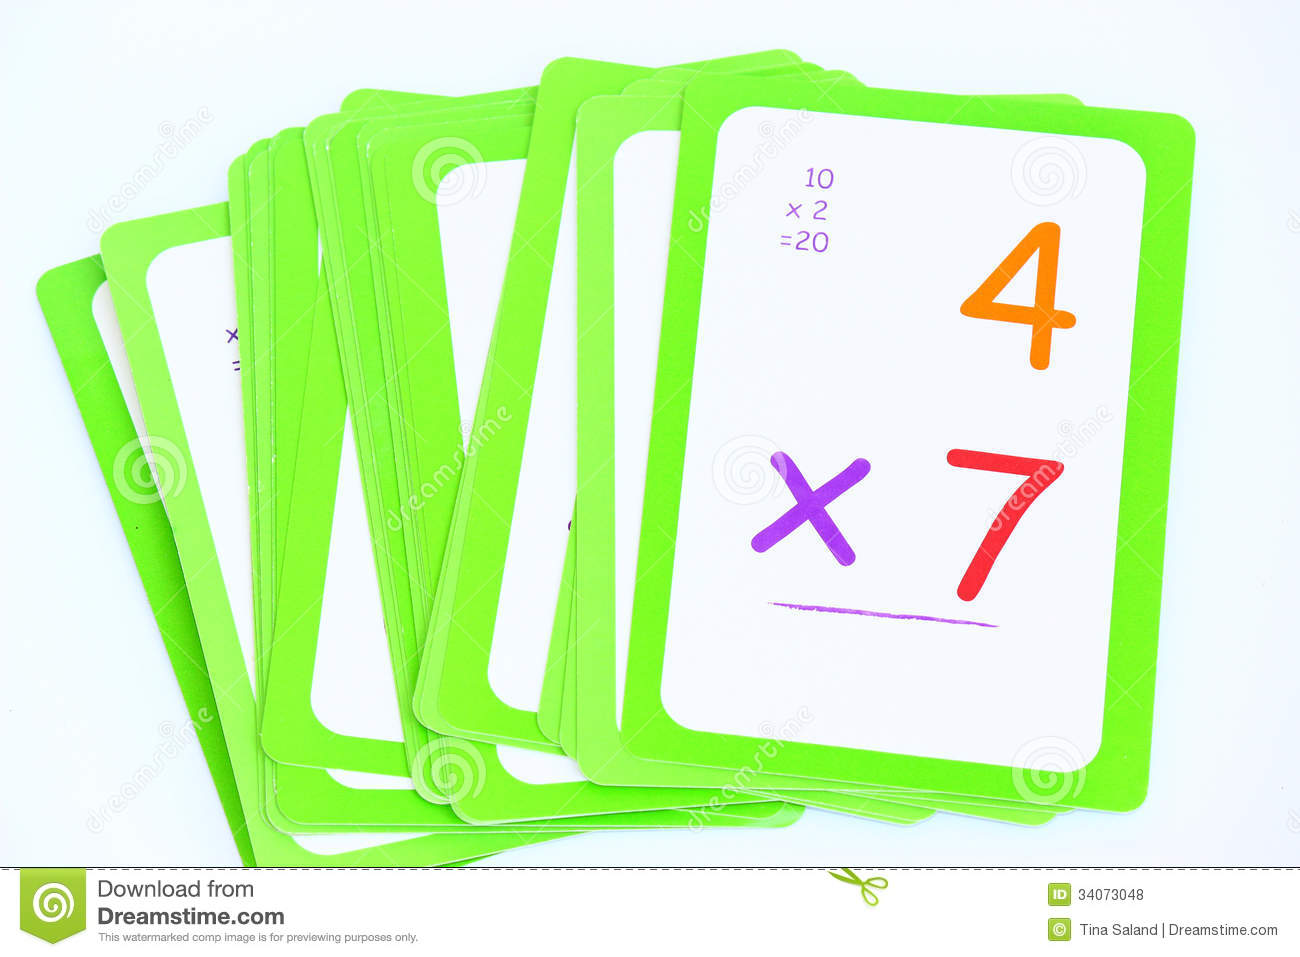 Worksheet Multiplication Flashcards flash cards royalty free stock photos image 34073048 cards